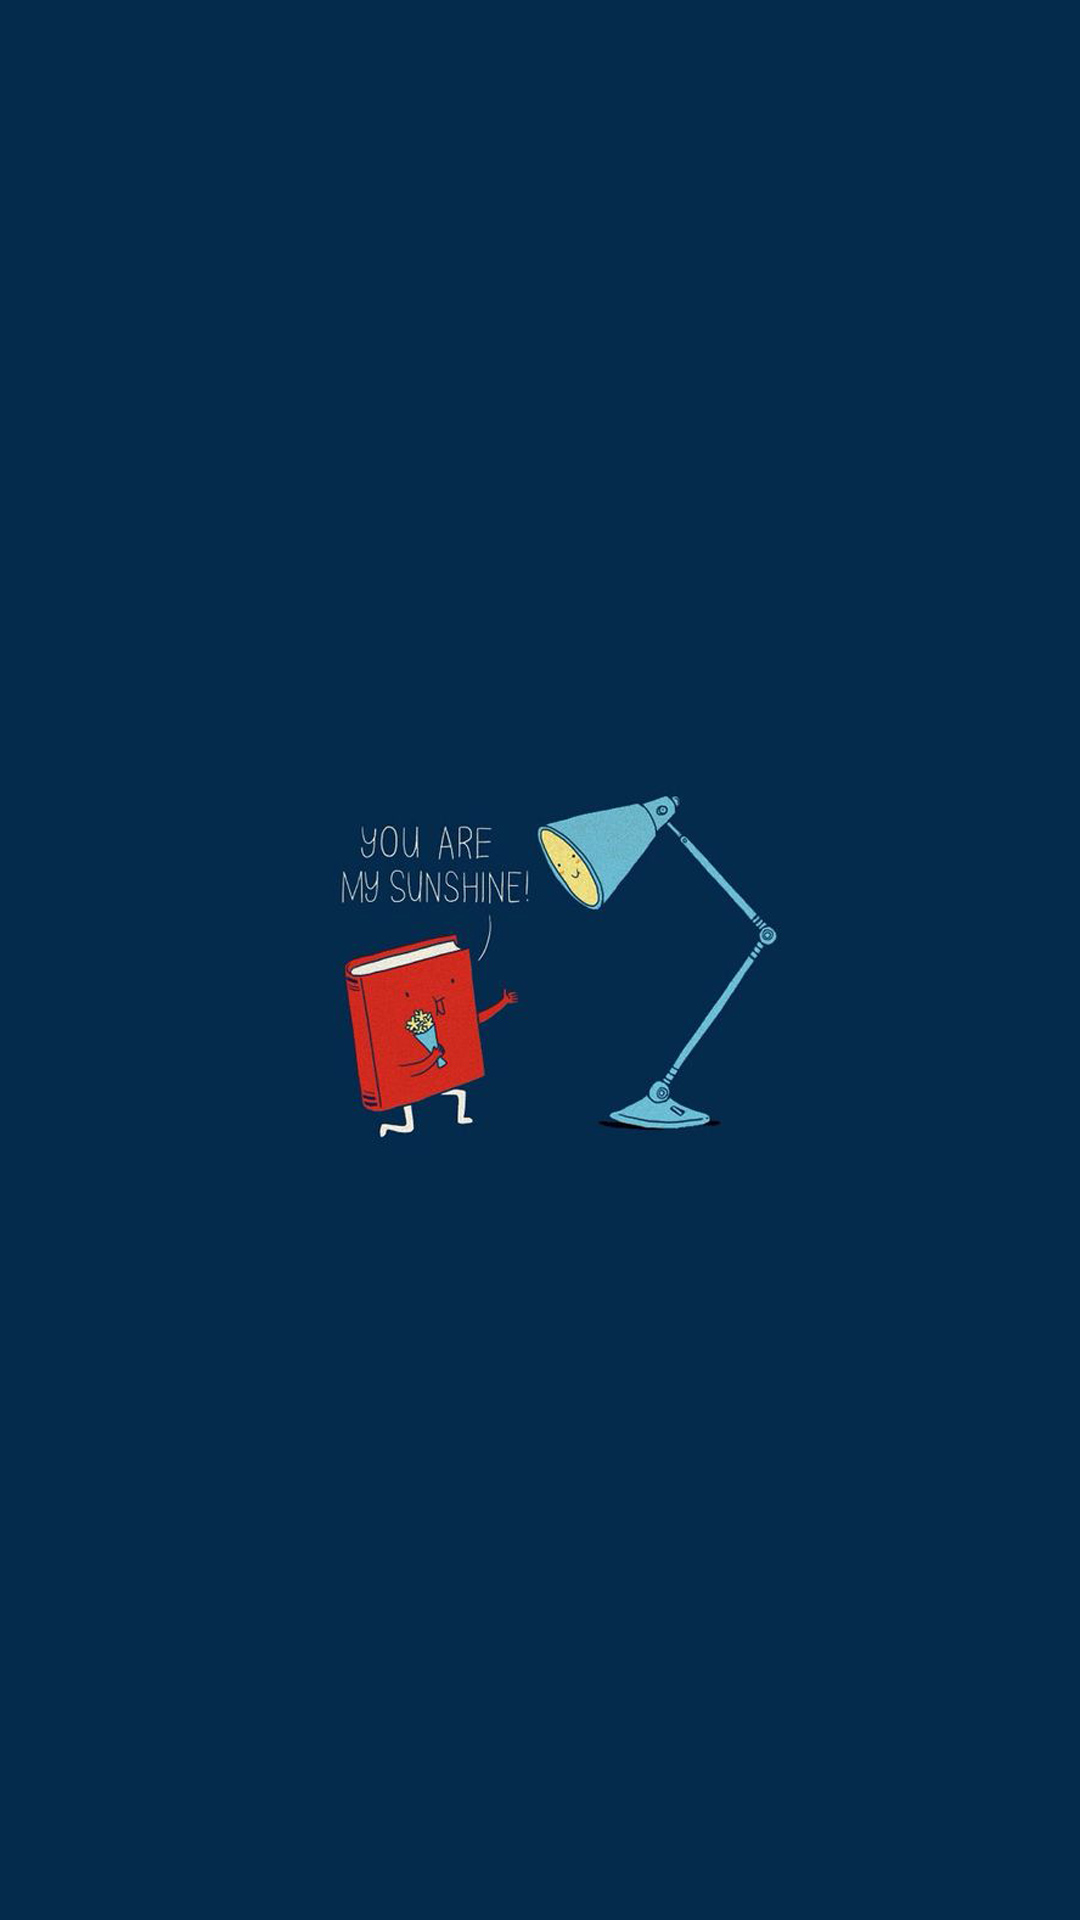 Book-Lamp-You-Are-My-Sunshine-Android-wallpaper-wp5403781